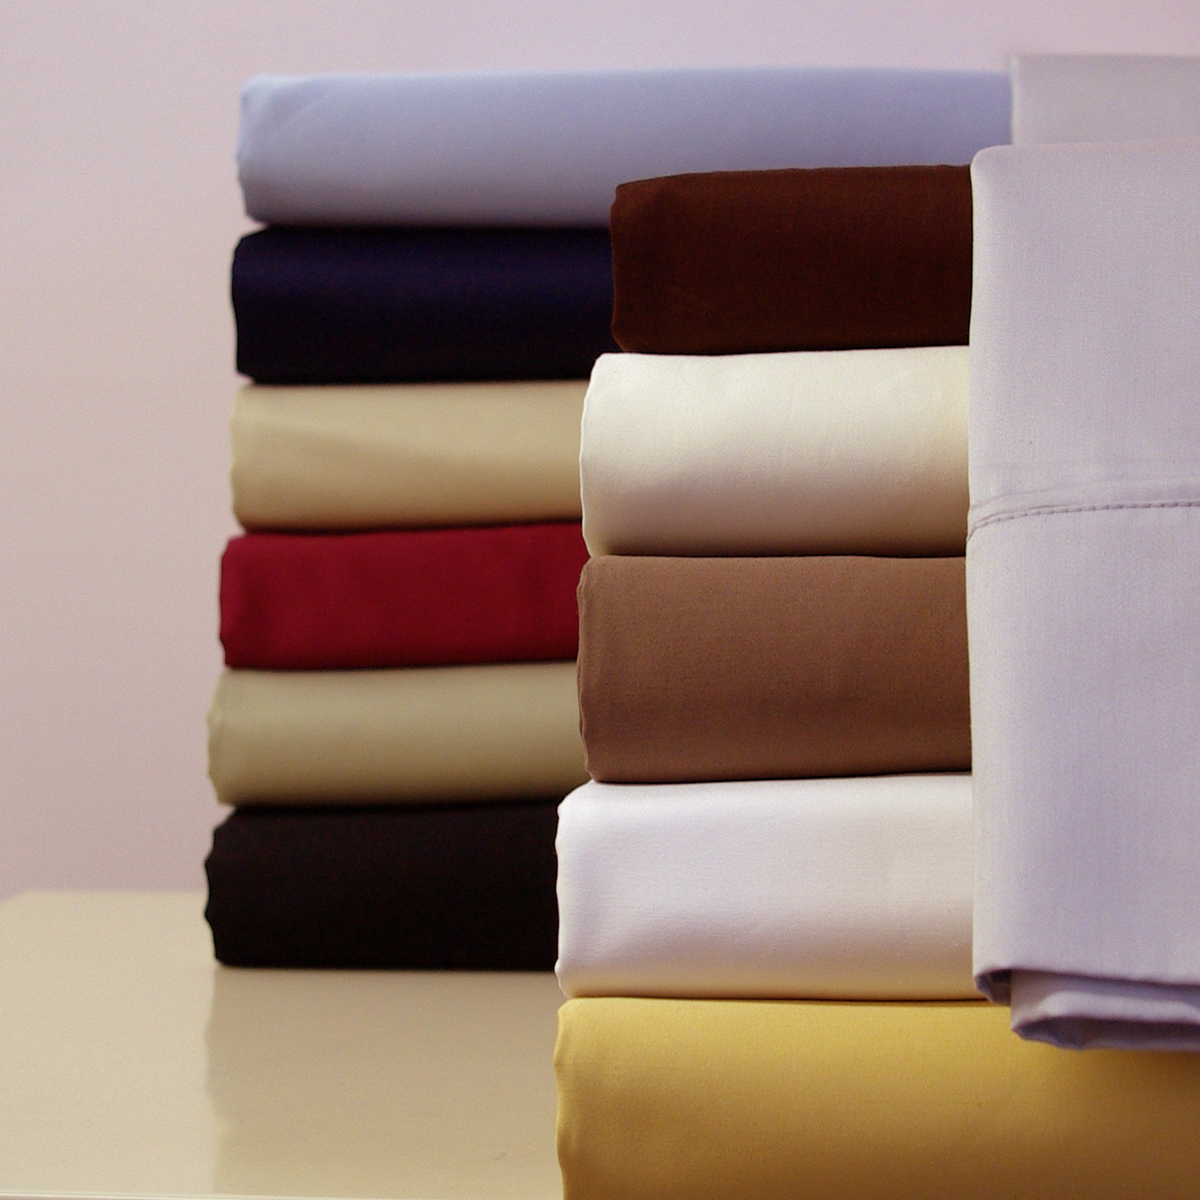 Royal Tradition: 300 Thread count Solid 100-Percent Egyptian cotton. Wrap yourself in the Softness of the luxurious 300 Thread count, 100% Egyptian cotton sheets like those found in World Class Hotels. Imported from the Land of Cleopatra, these fine luxury bed linens are carfted from long staple Giza cotton grown in the Lush Nile River Valley since the time of the Pharaohs. Comfort, quality and opulence set our luxury bedding in a class above the rest. Elegent yet durable, their softness is enhanced with each washing.